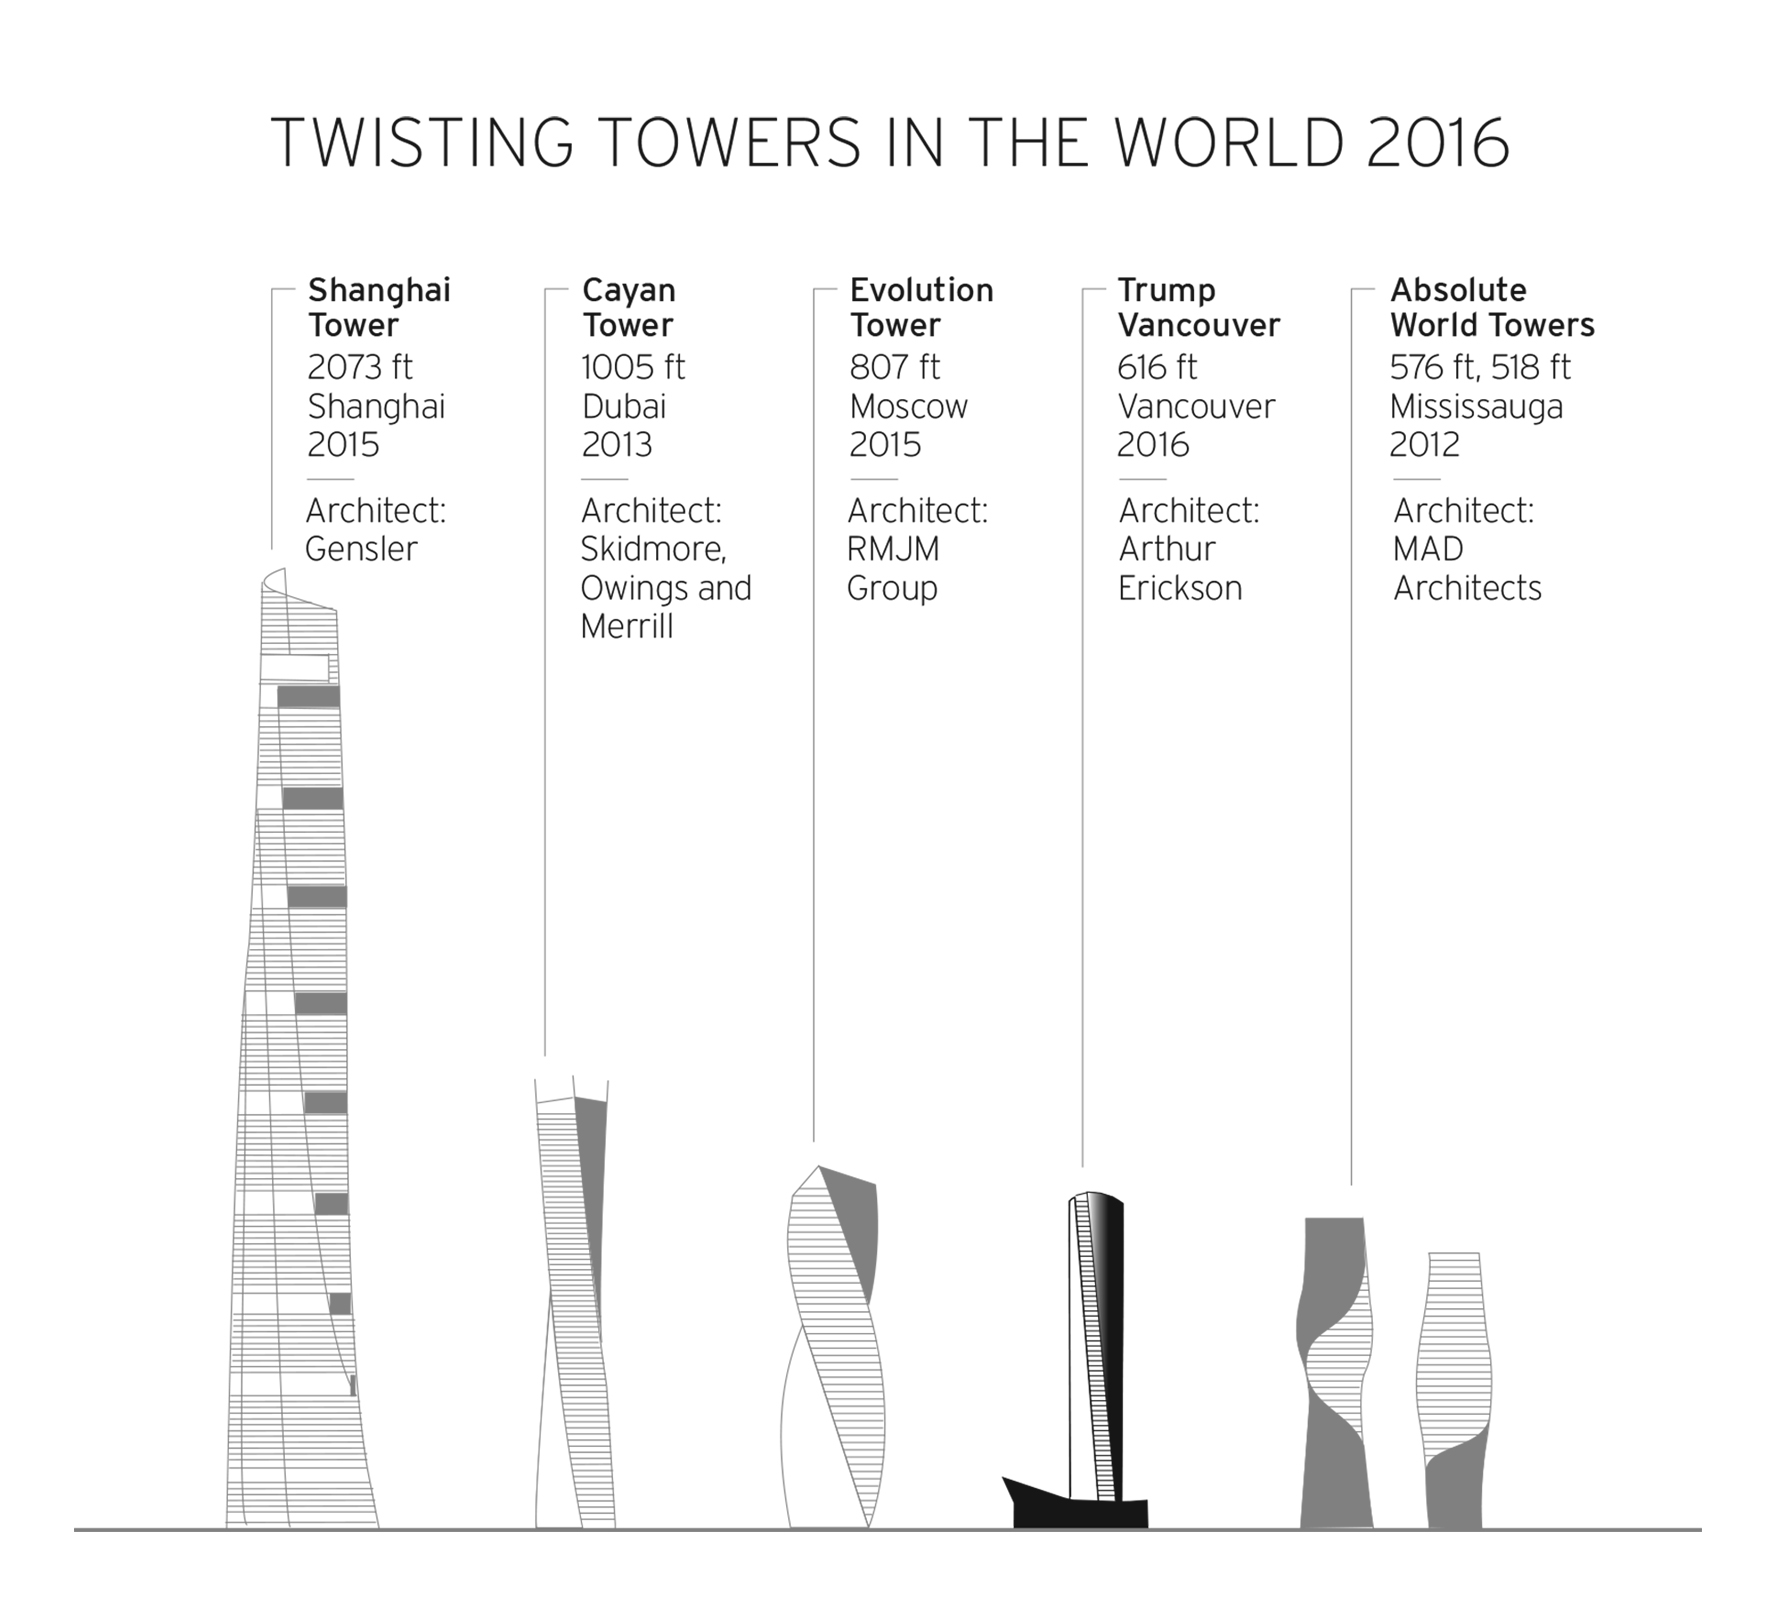 Twisting Towers in the World 2016